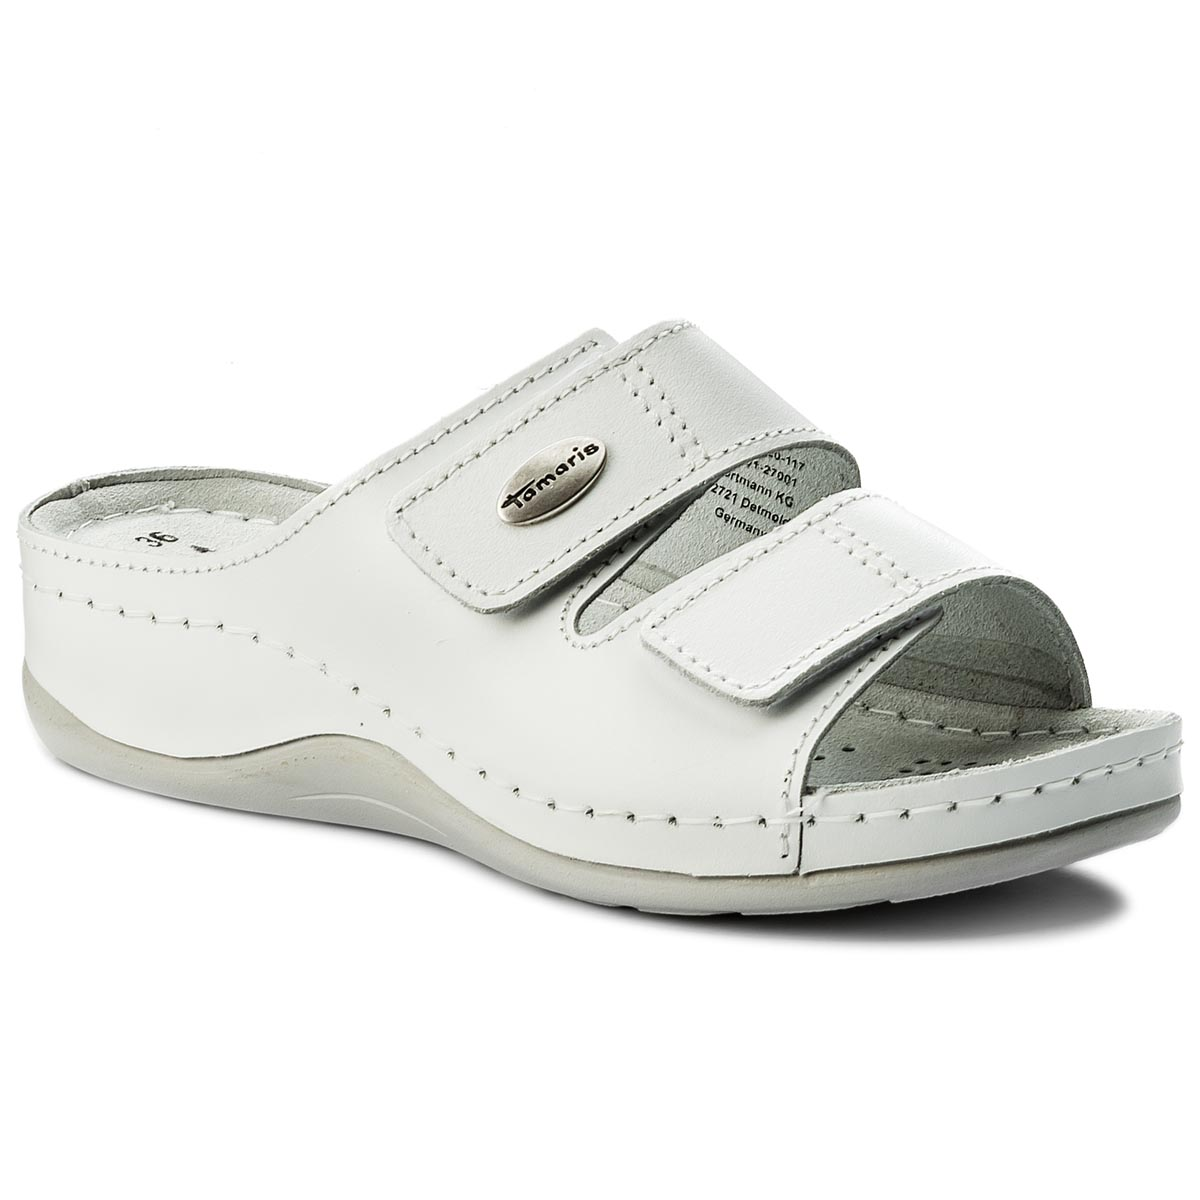 Klapki TAMARIS - 1-27510-20 White Leather 117